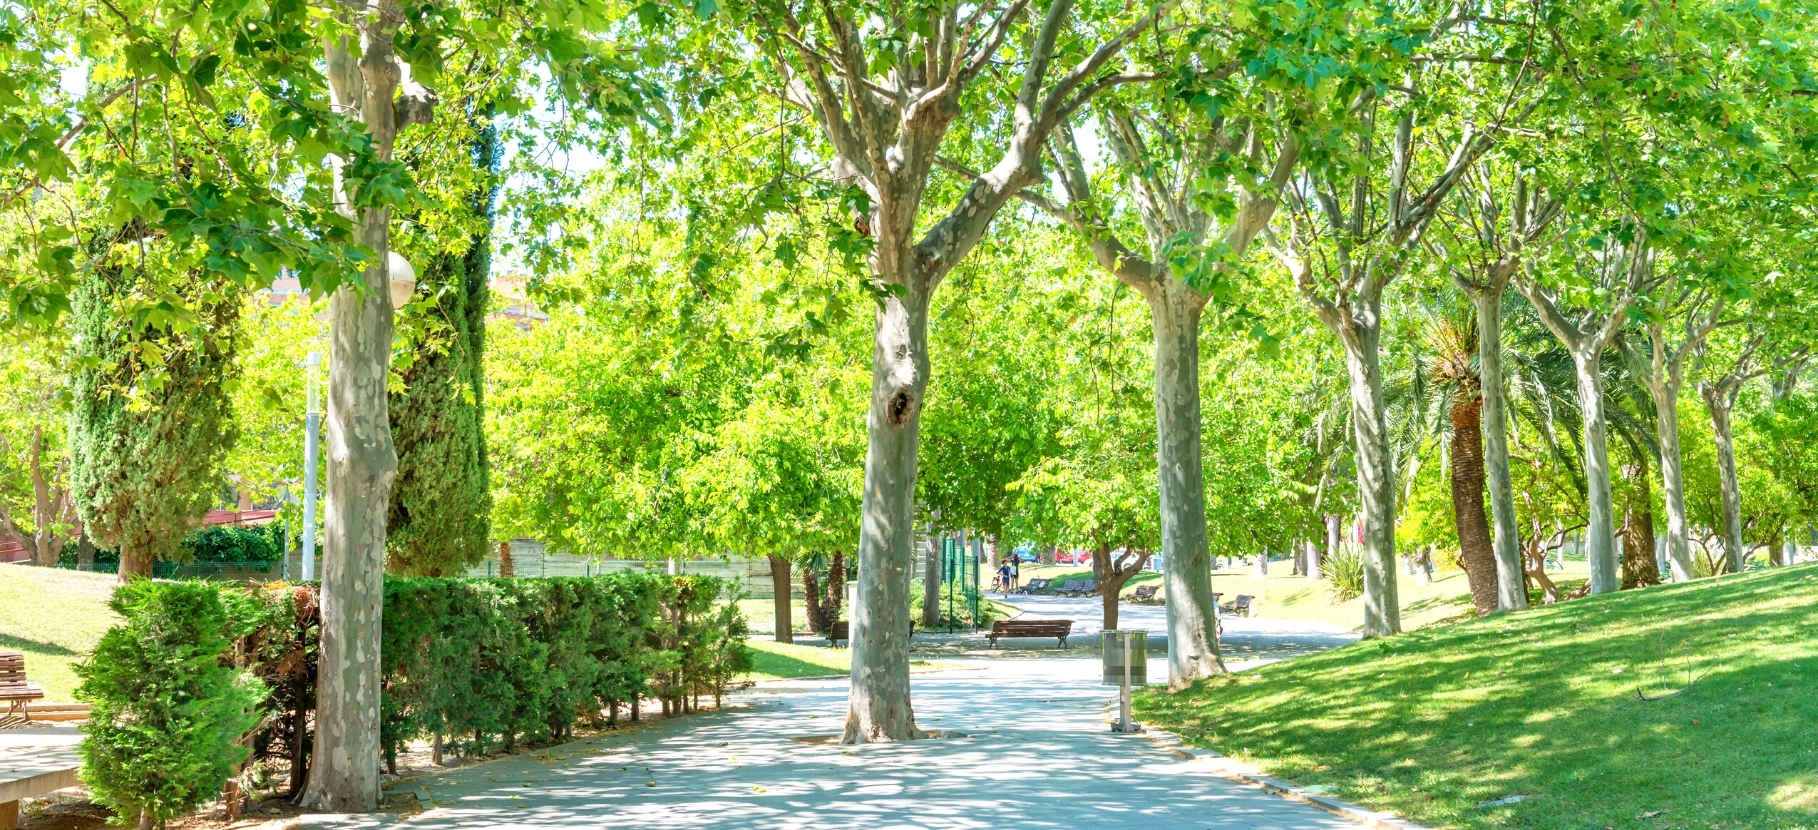 Trees in park.